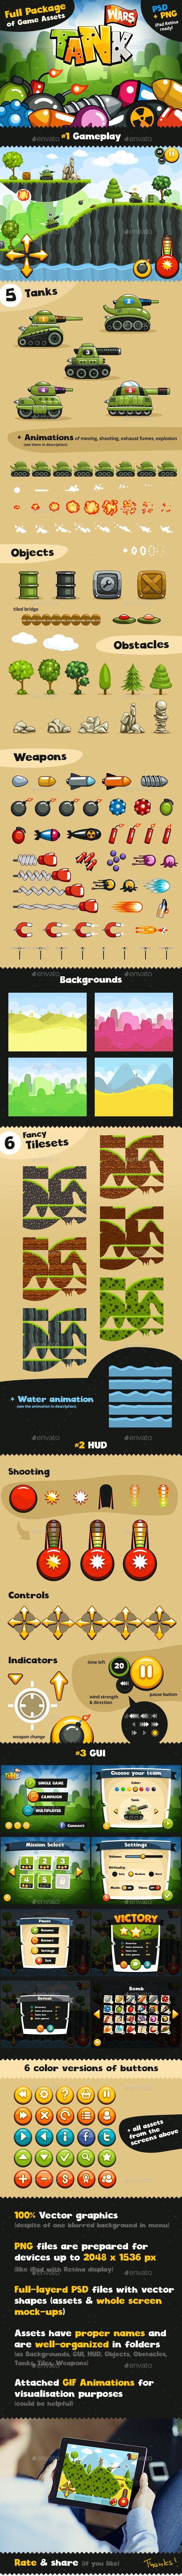 Game Assets for Tank Wars - Game Kits Game Assets § Find more artworks: www.pinterest.com/aalishev/ § Like us on Facebook: https://www.facebook.com/inspirationpins